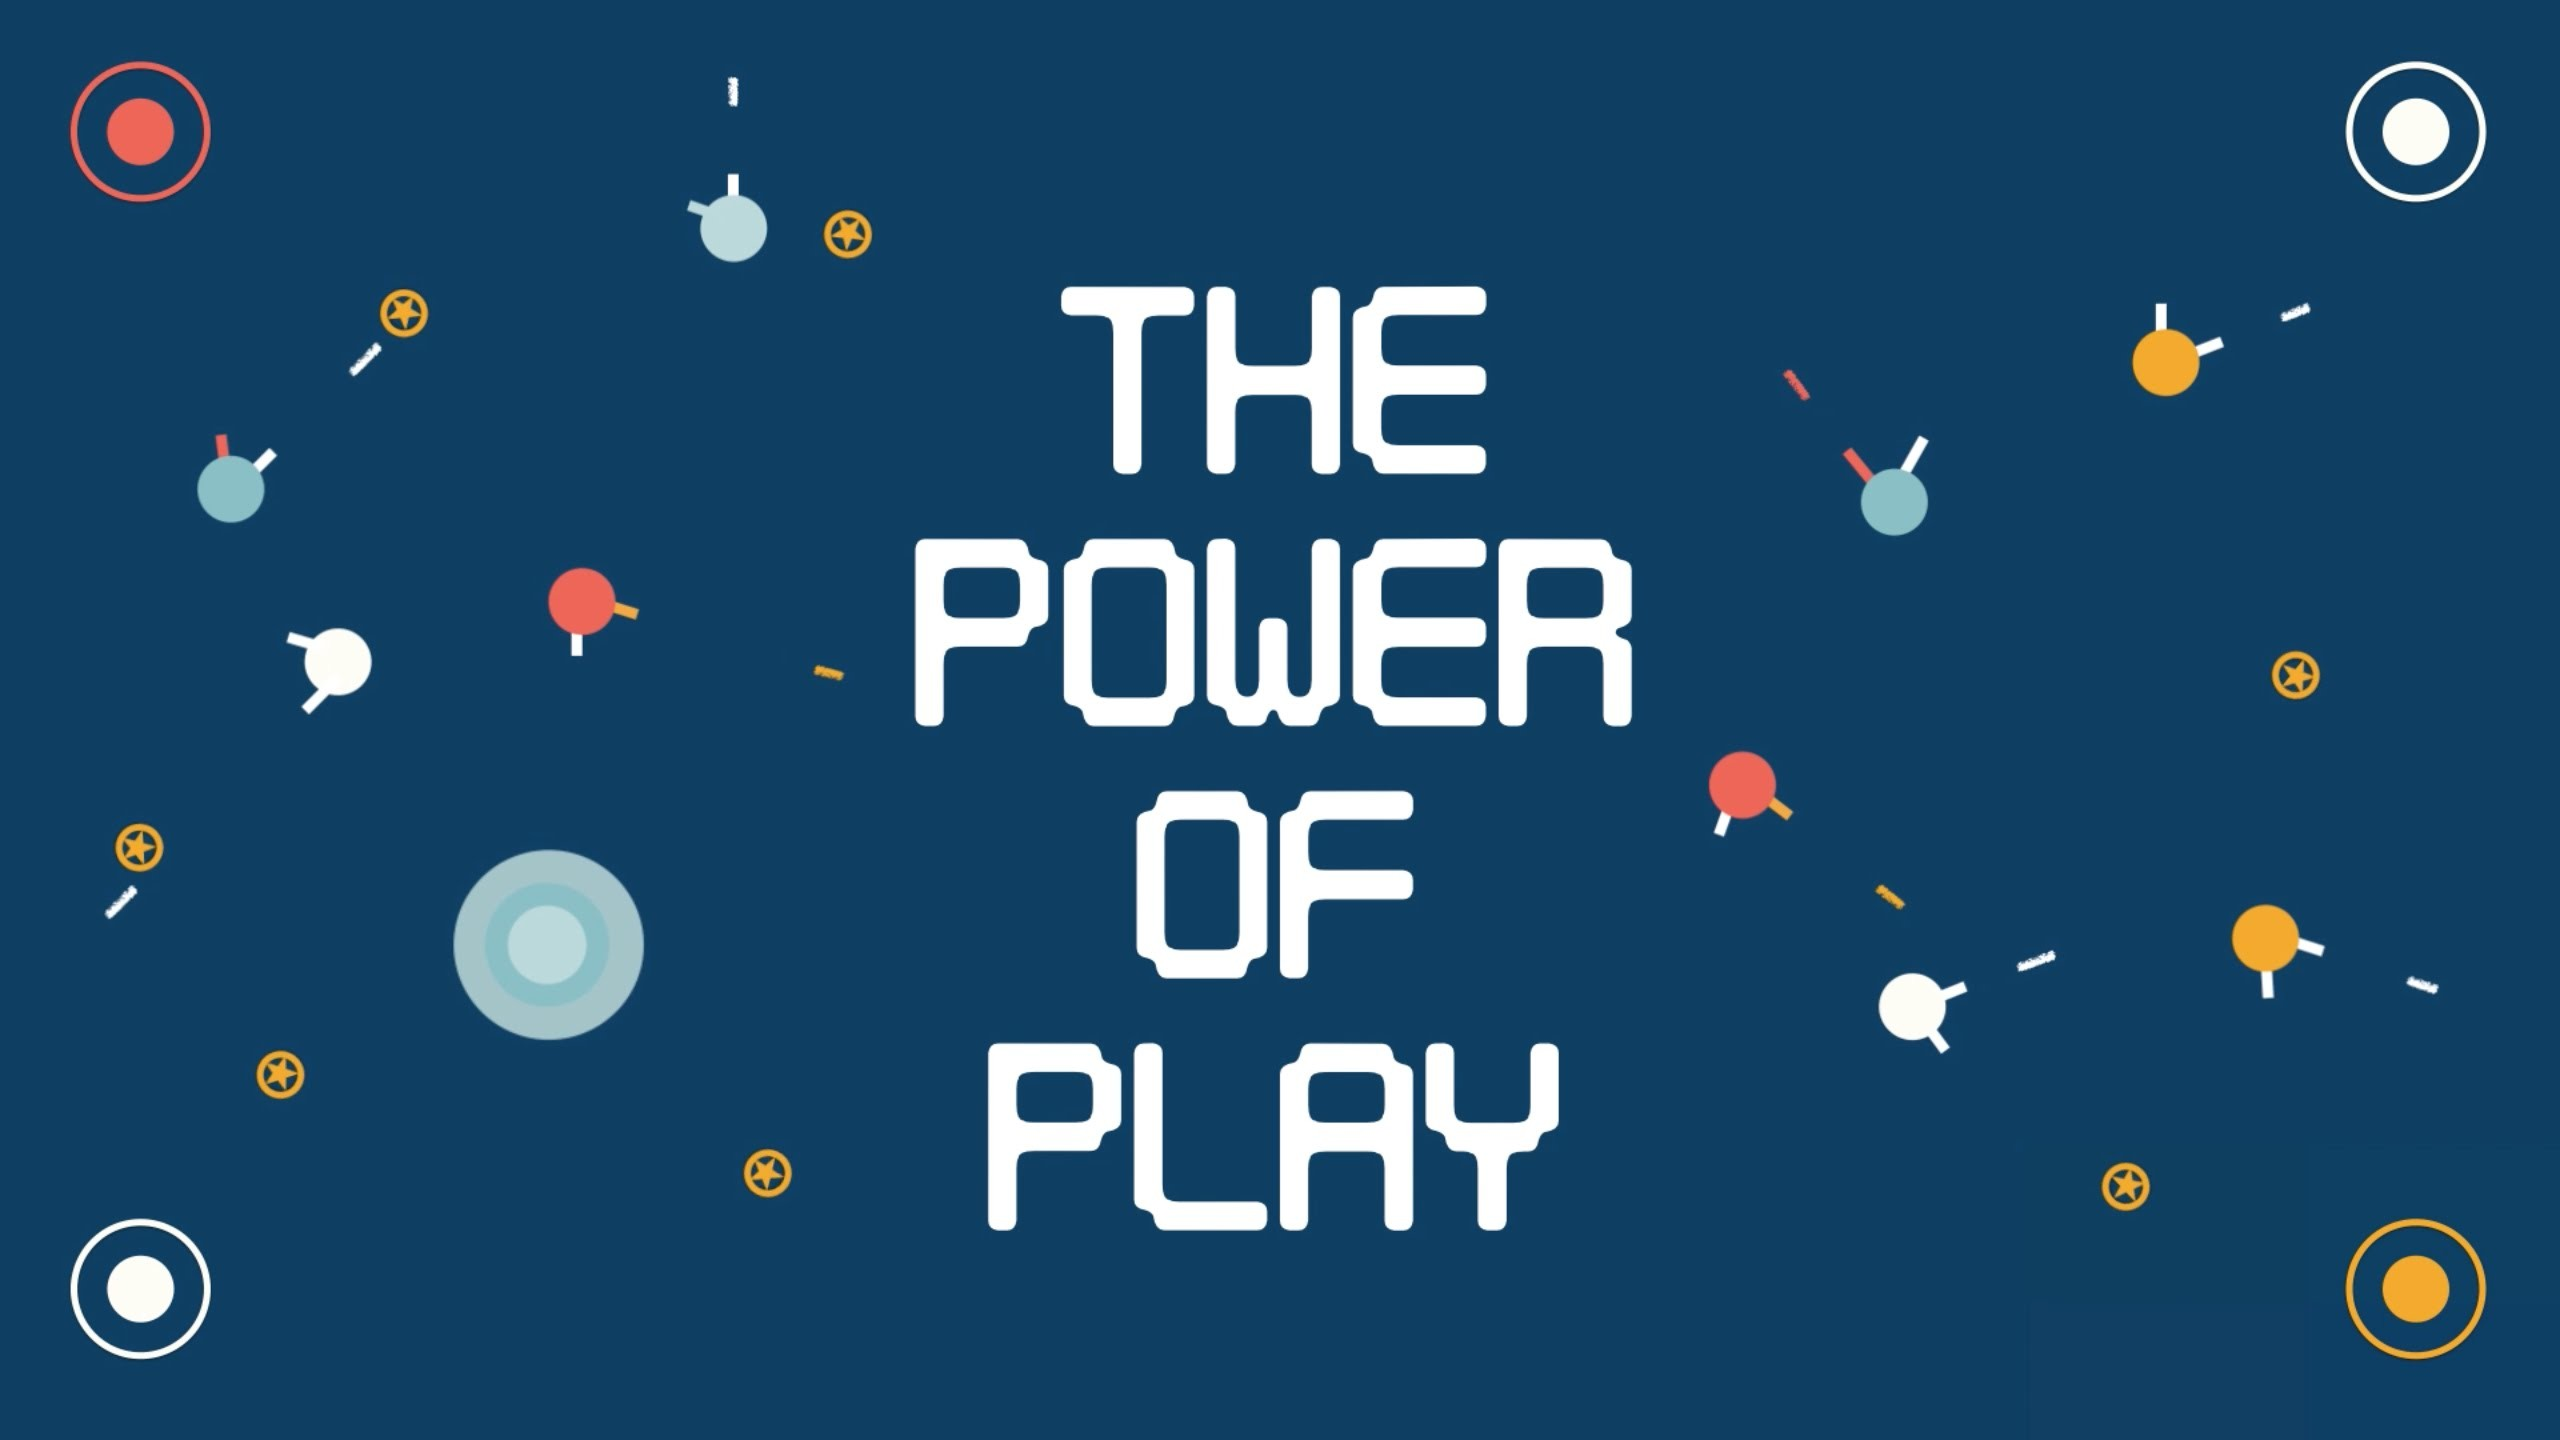 2560x1440 The IT Crowd Presents: The Power Of Play